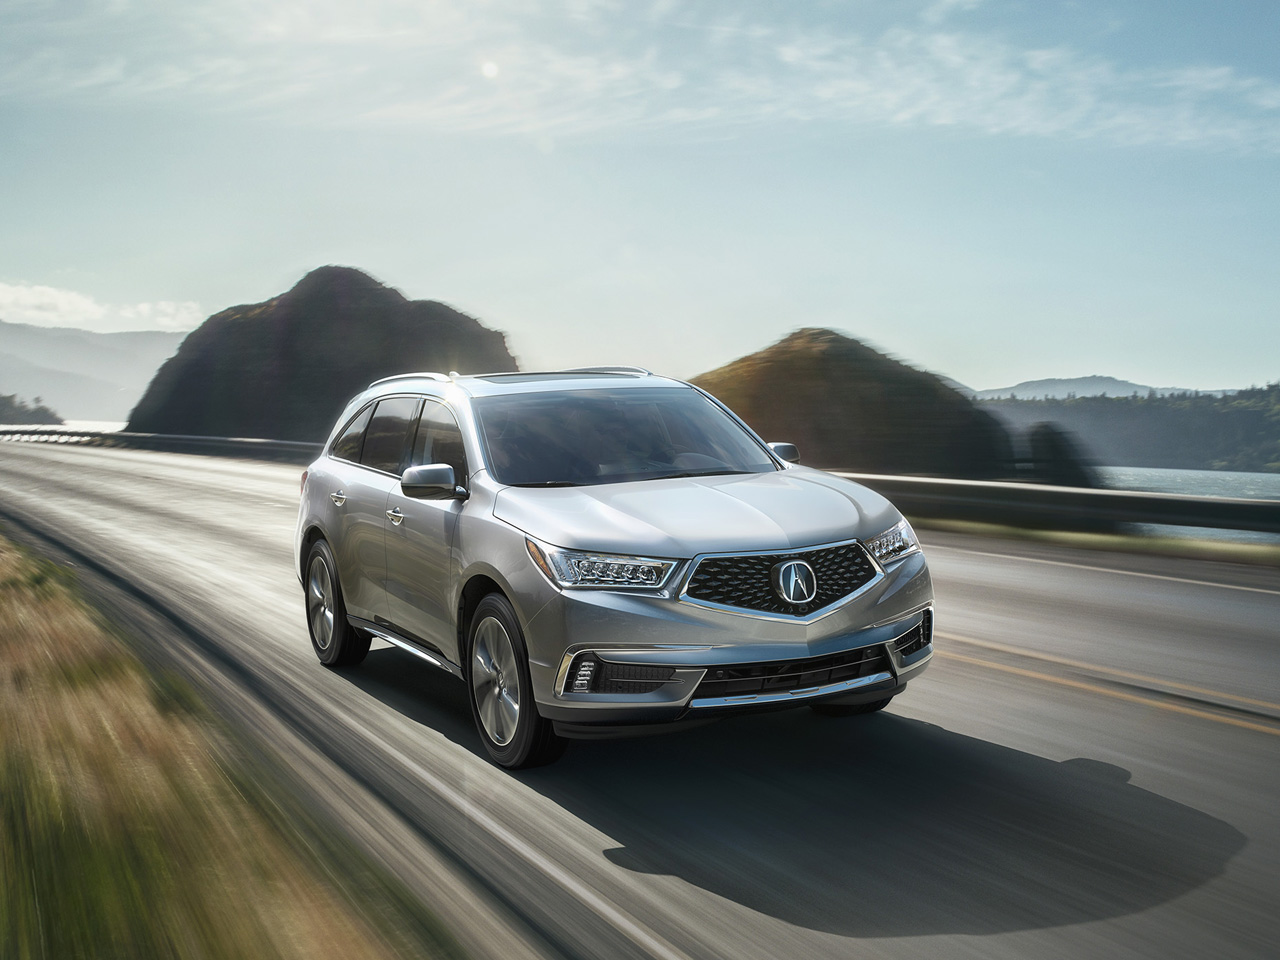 Acura Honoured For Lowest Cost Of Ownership Over Five Years Amongst